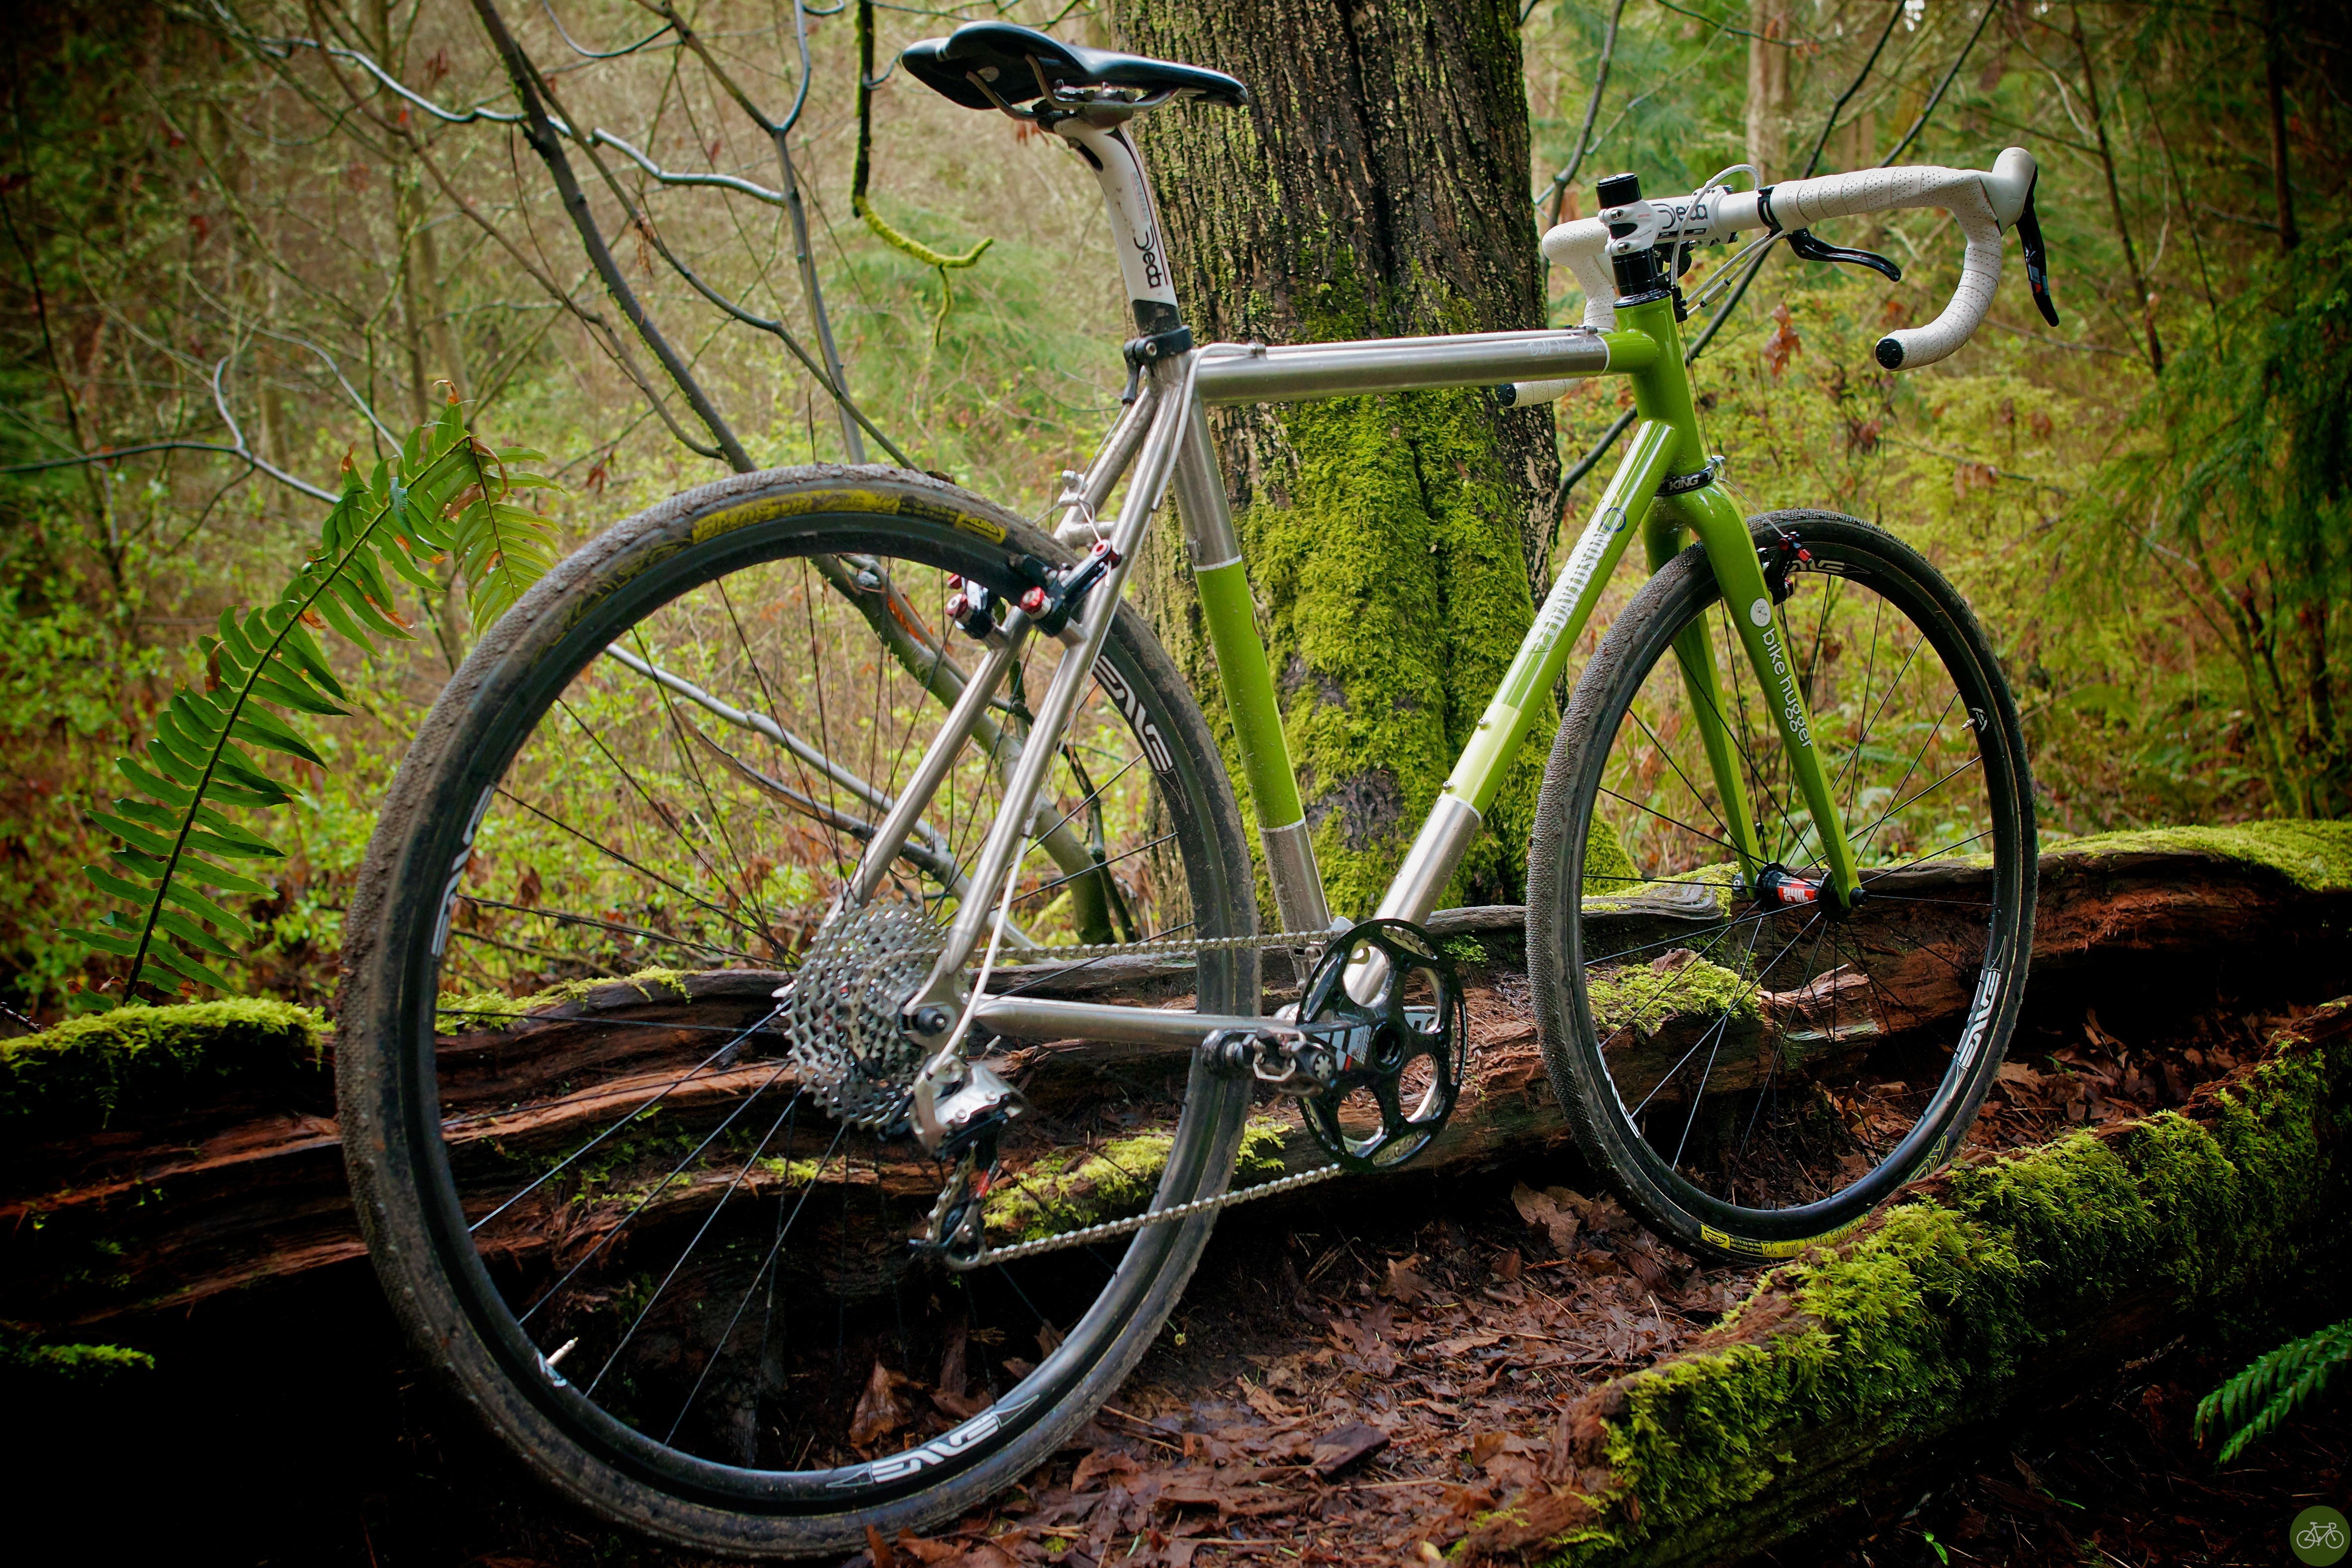 Gully photos of the D-Plus, our latest #makebikes project.